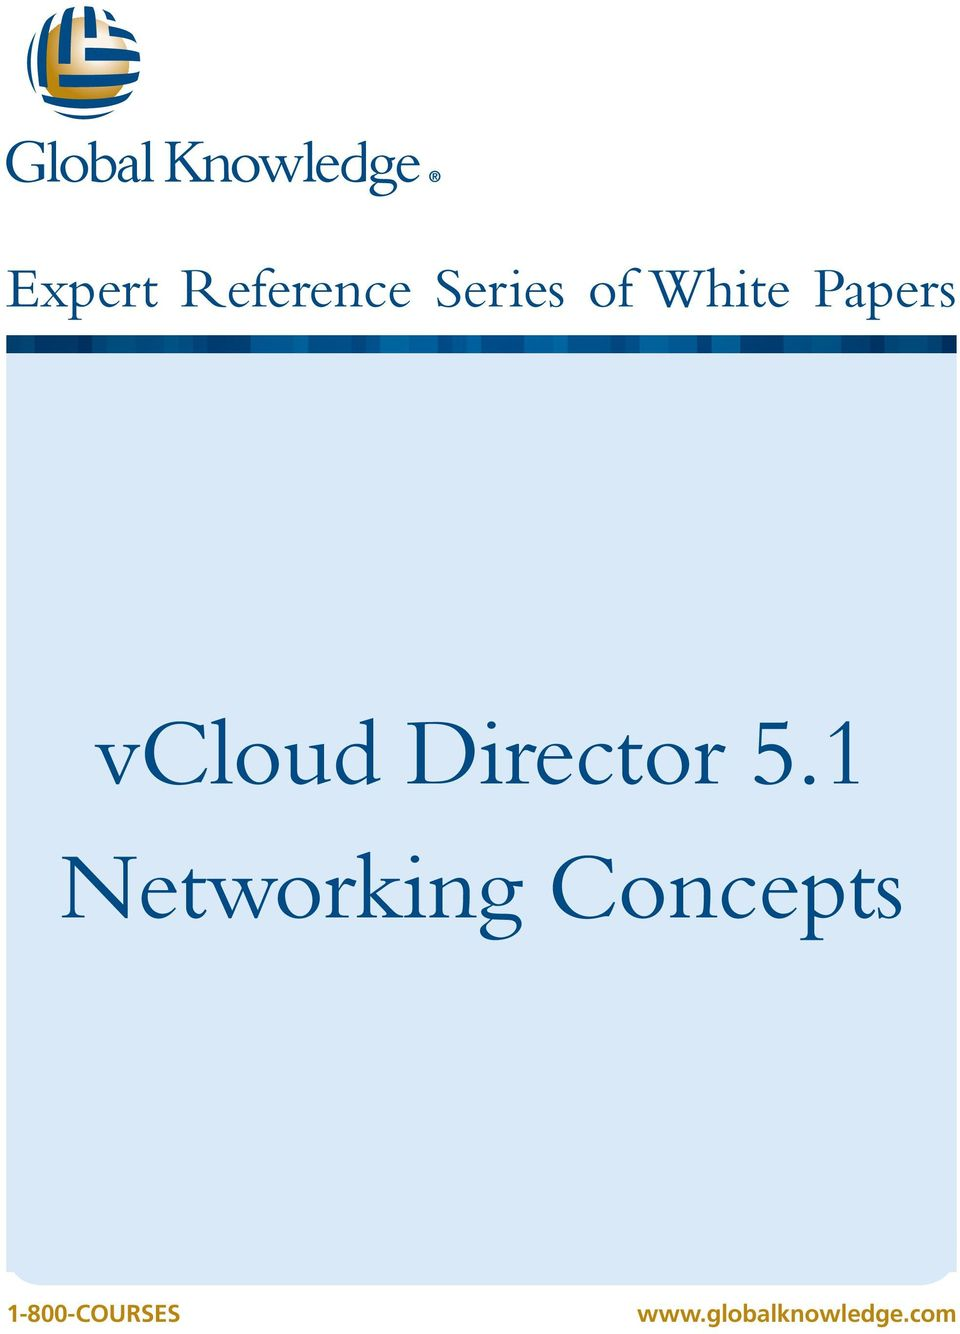 5.1 Networking Concepts